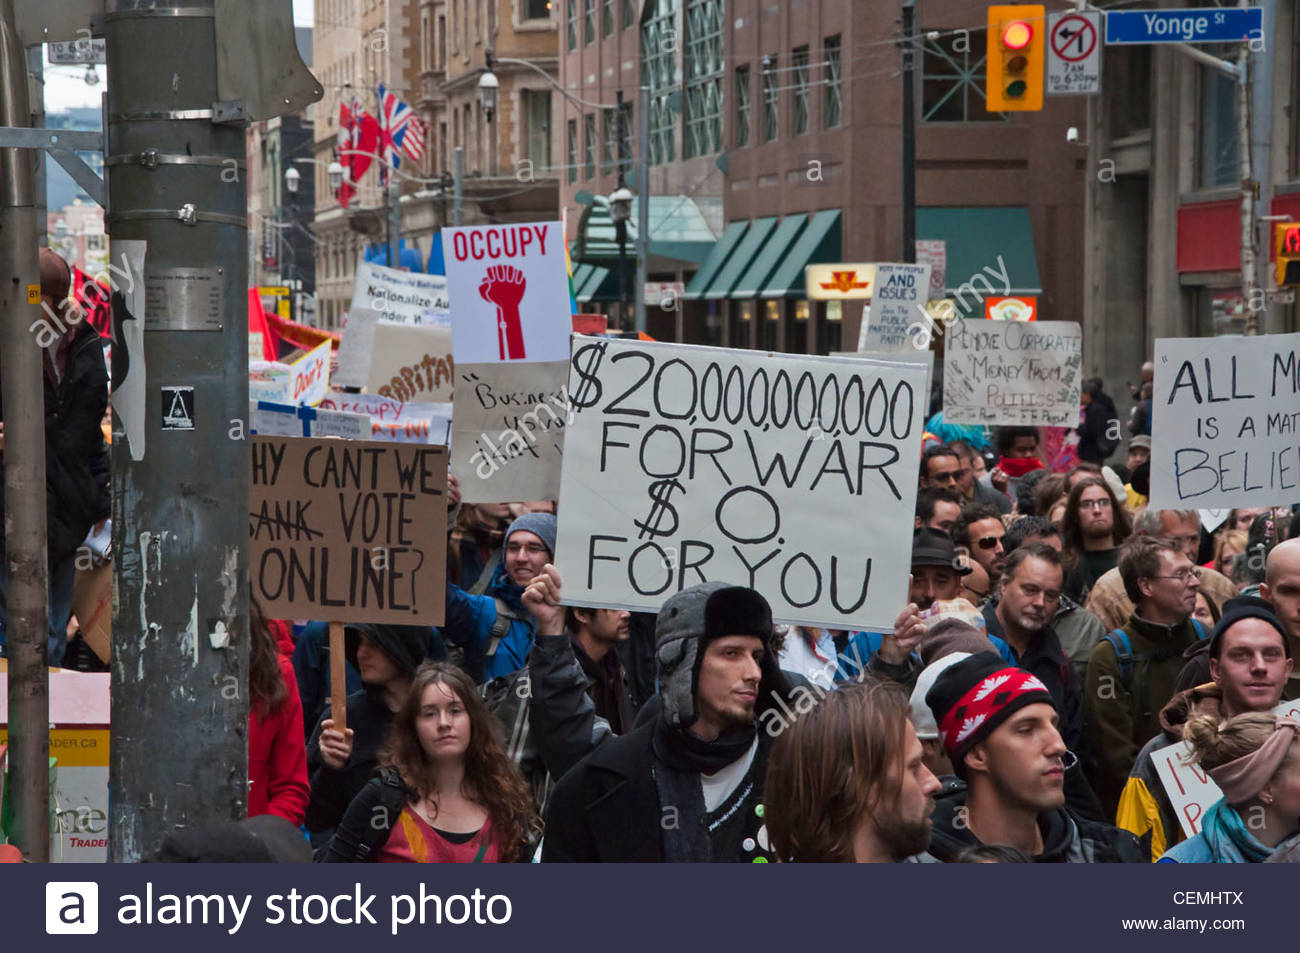 Thousands of people protesting against neo-liberalism in Toronto,Canada. Strong anti-war message. - Stock Image